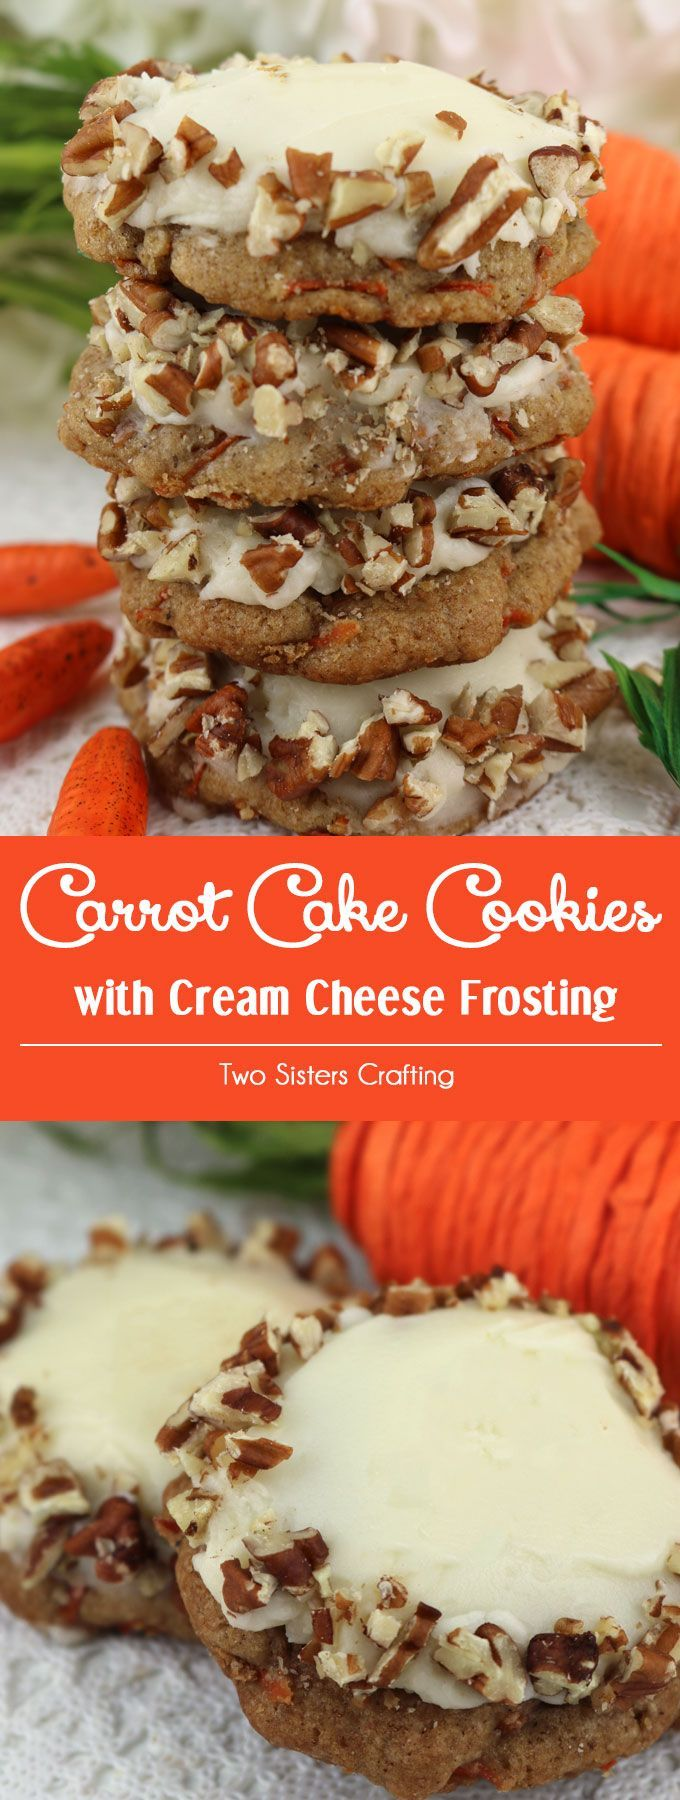 Carrot Cake Cookies with Cream Cheese Frosting are the perfect Spring Cookies and a wonderful choice for Easter, Mother's Day or a Spring Brunch. This cookie tastes just like Carrot Cake which makes it a great Easter Dessert idea. And with the delicious cream cheese frosting and chopped pecans this is a Easter treat that is sure to please.